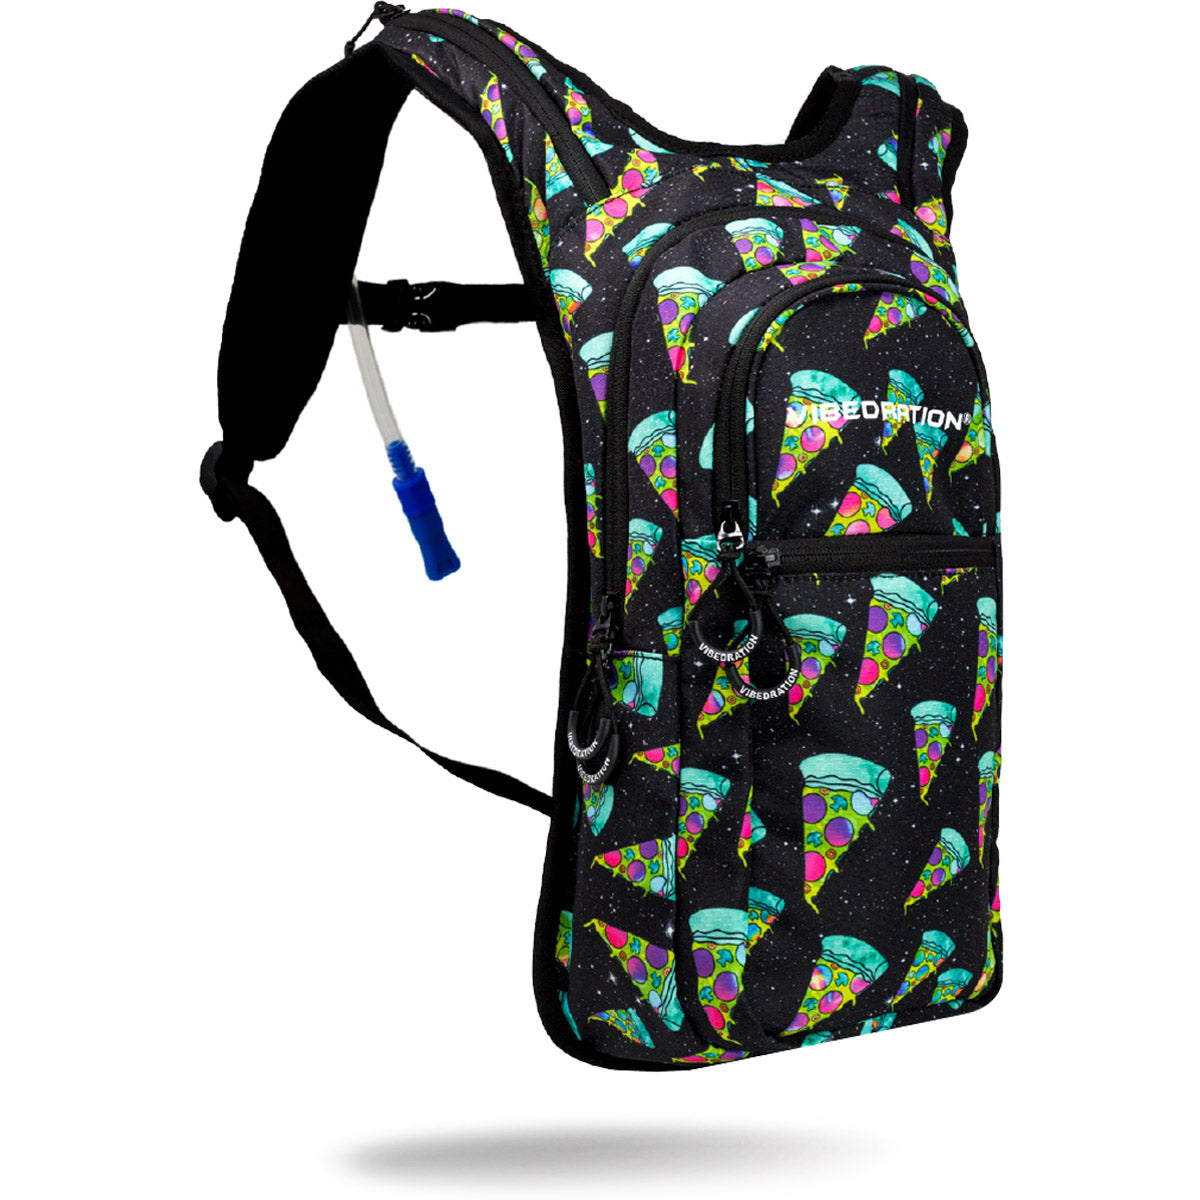 Green and Black pizza hydration pack with 2 liter water capacity